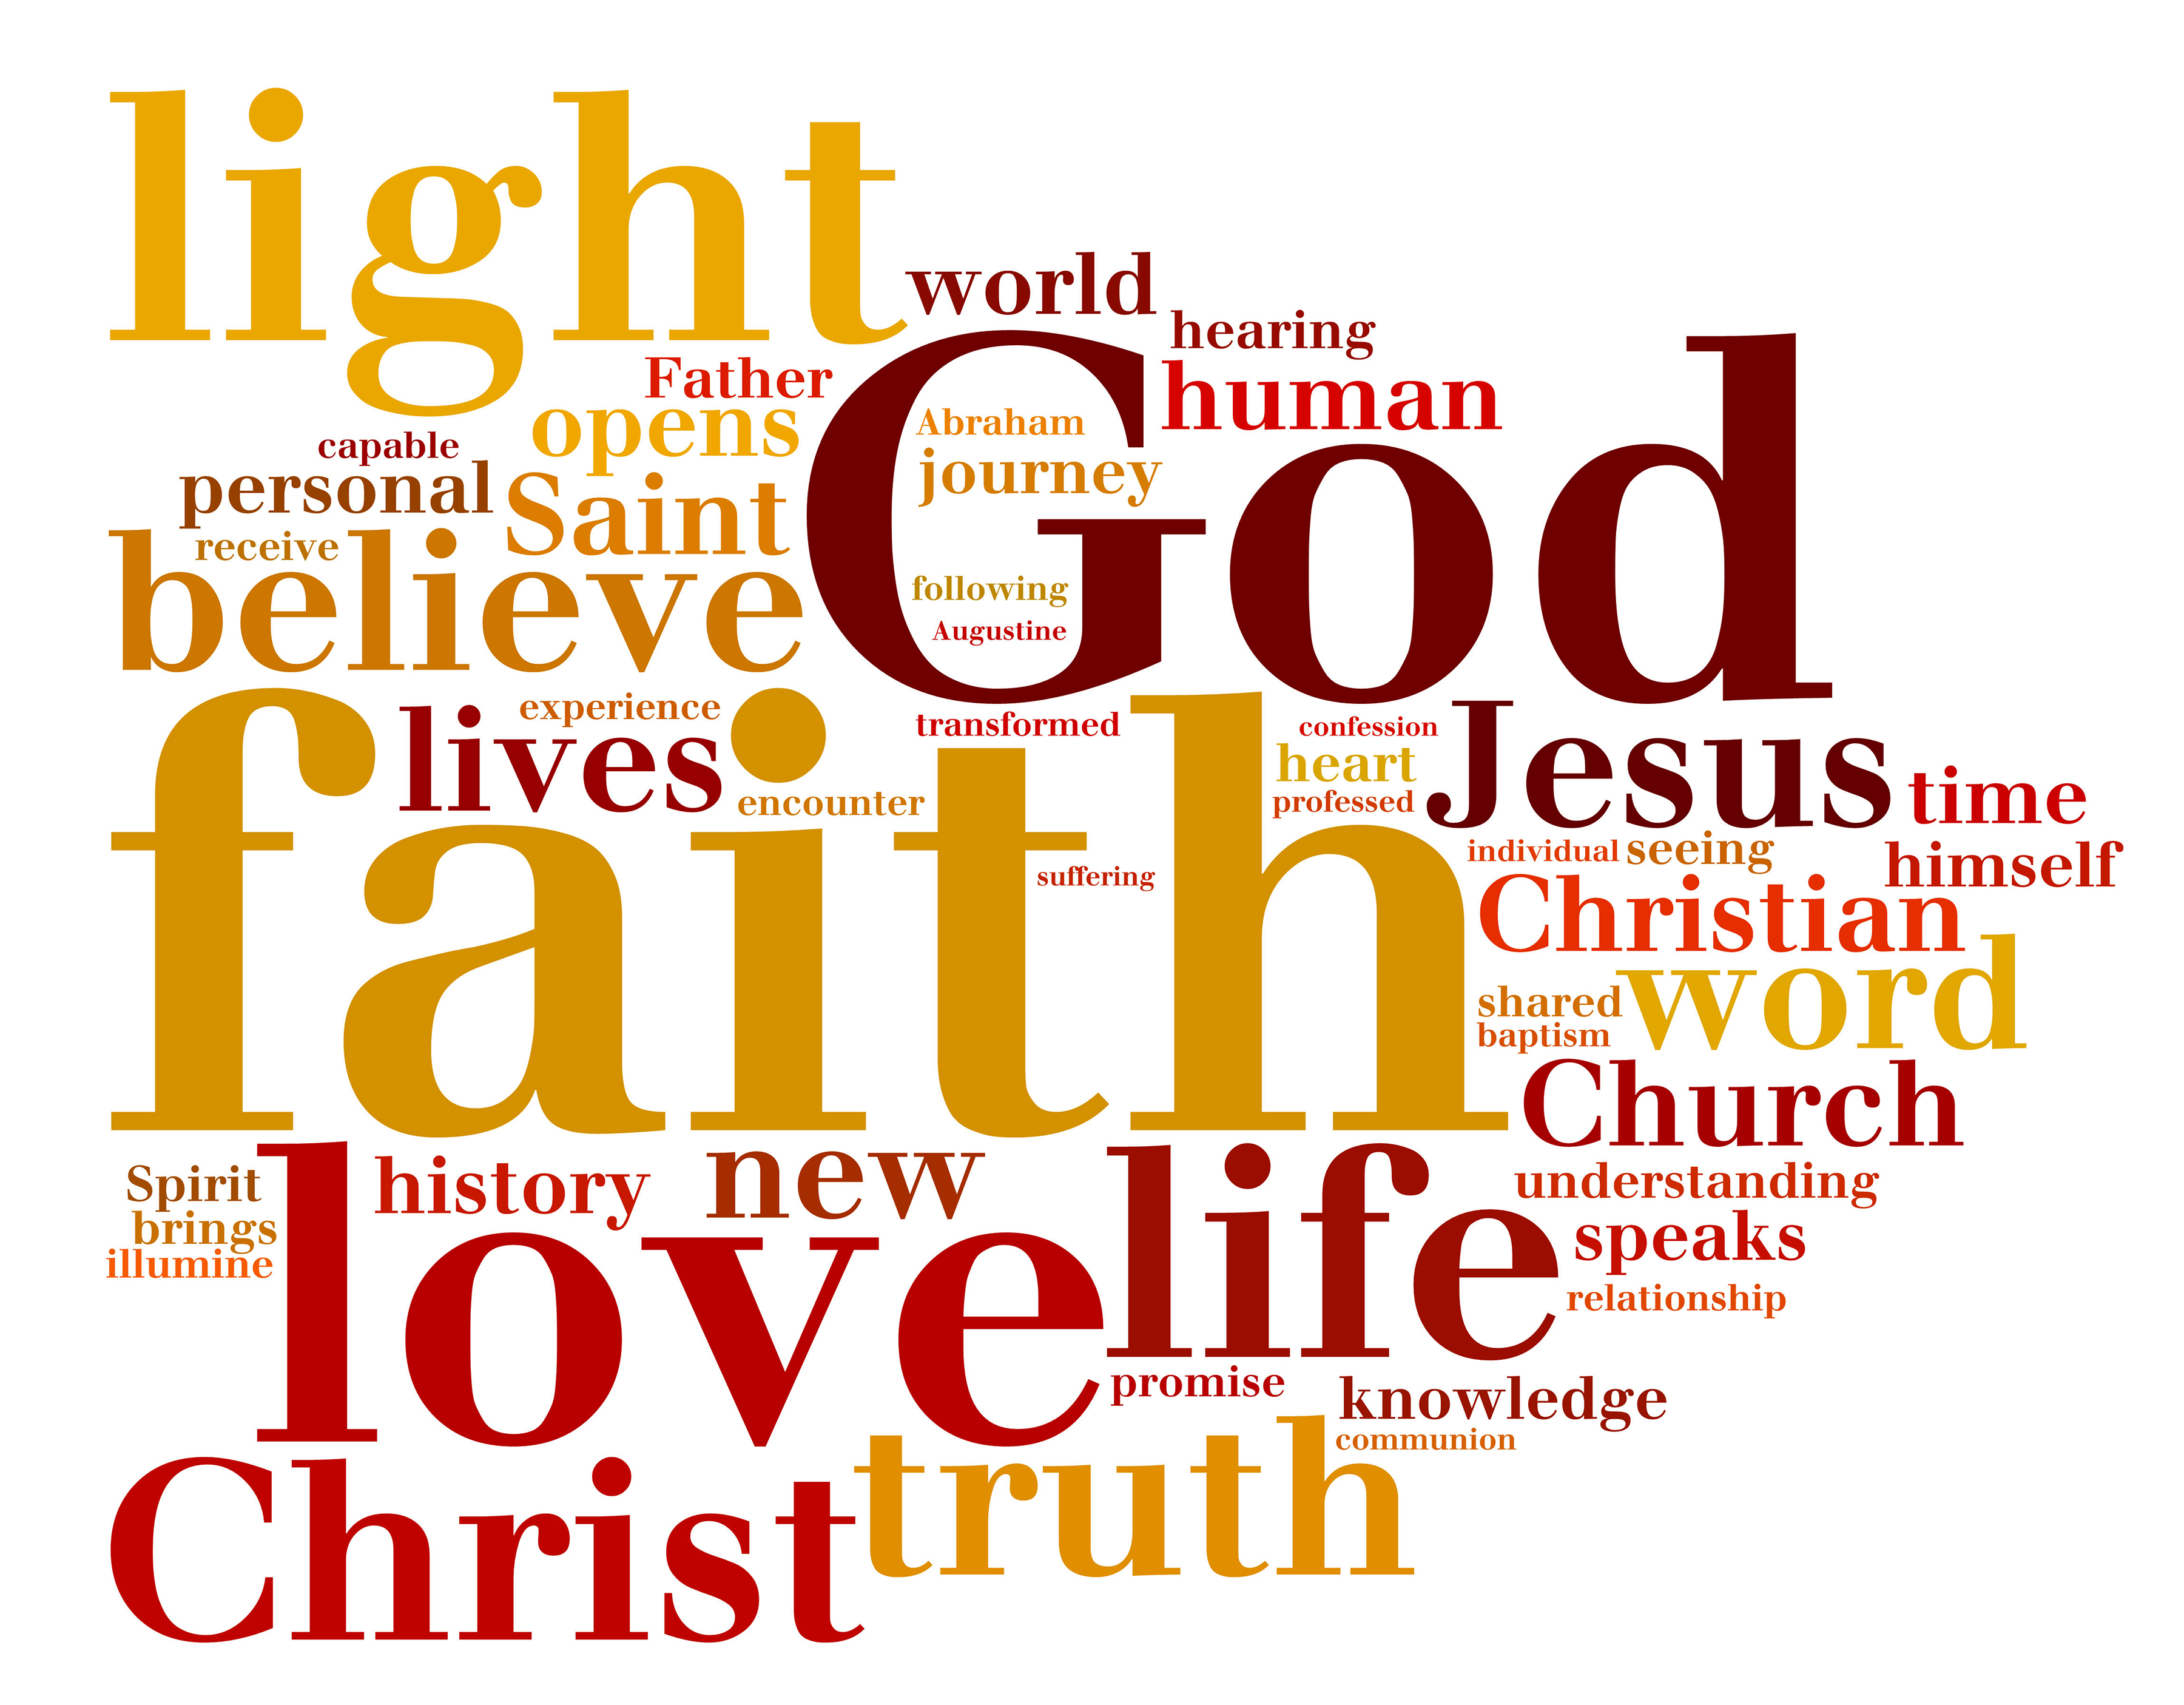 Encyclical Word Cloud Created By Cns  July 5 2013